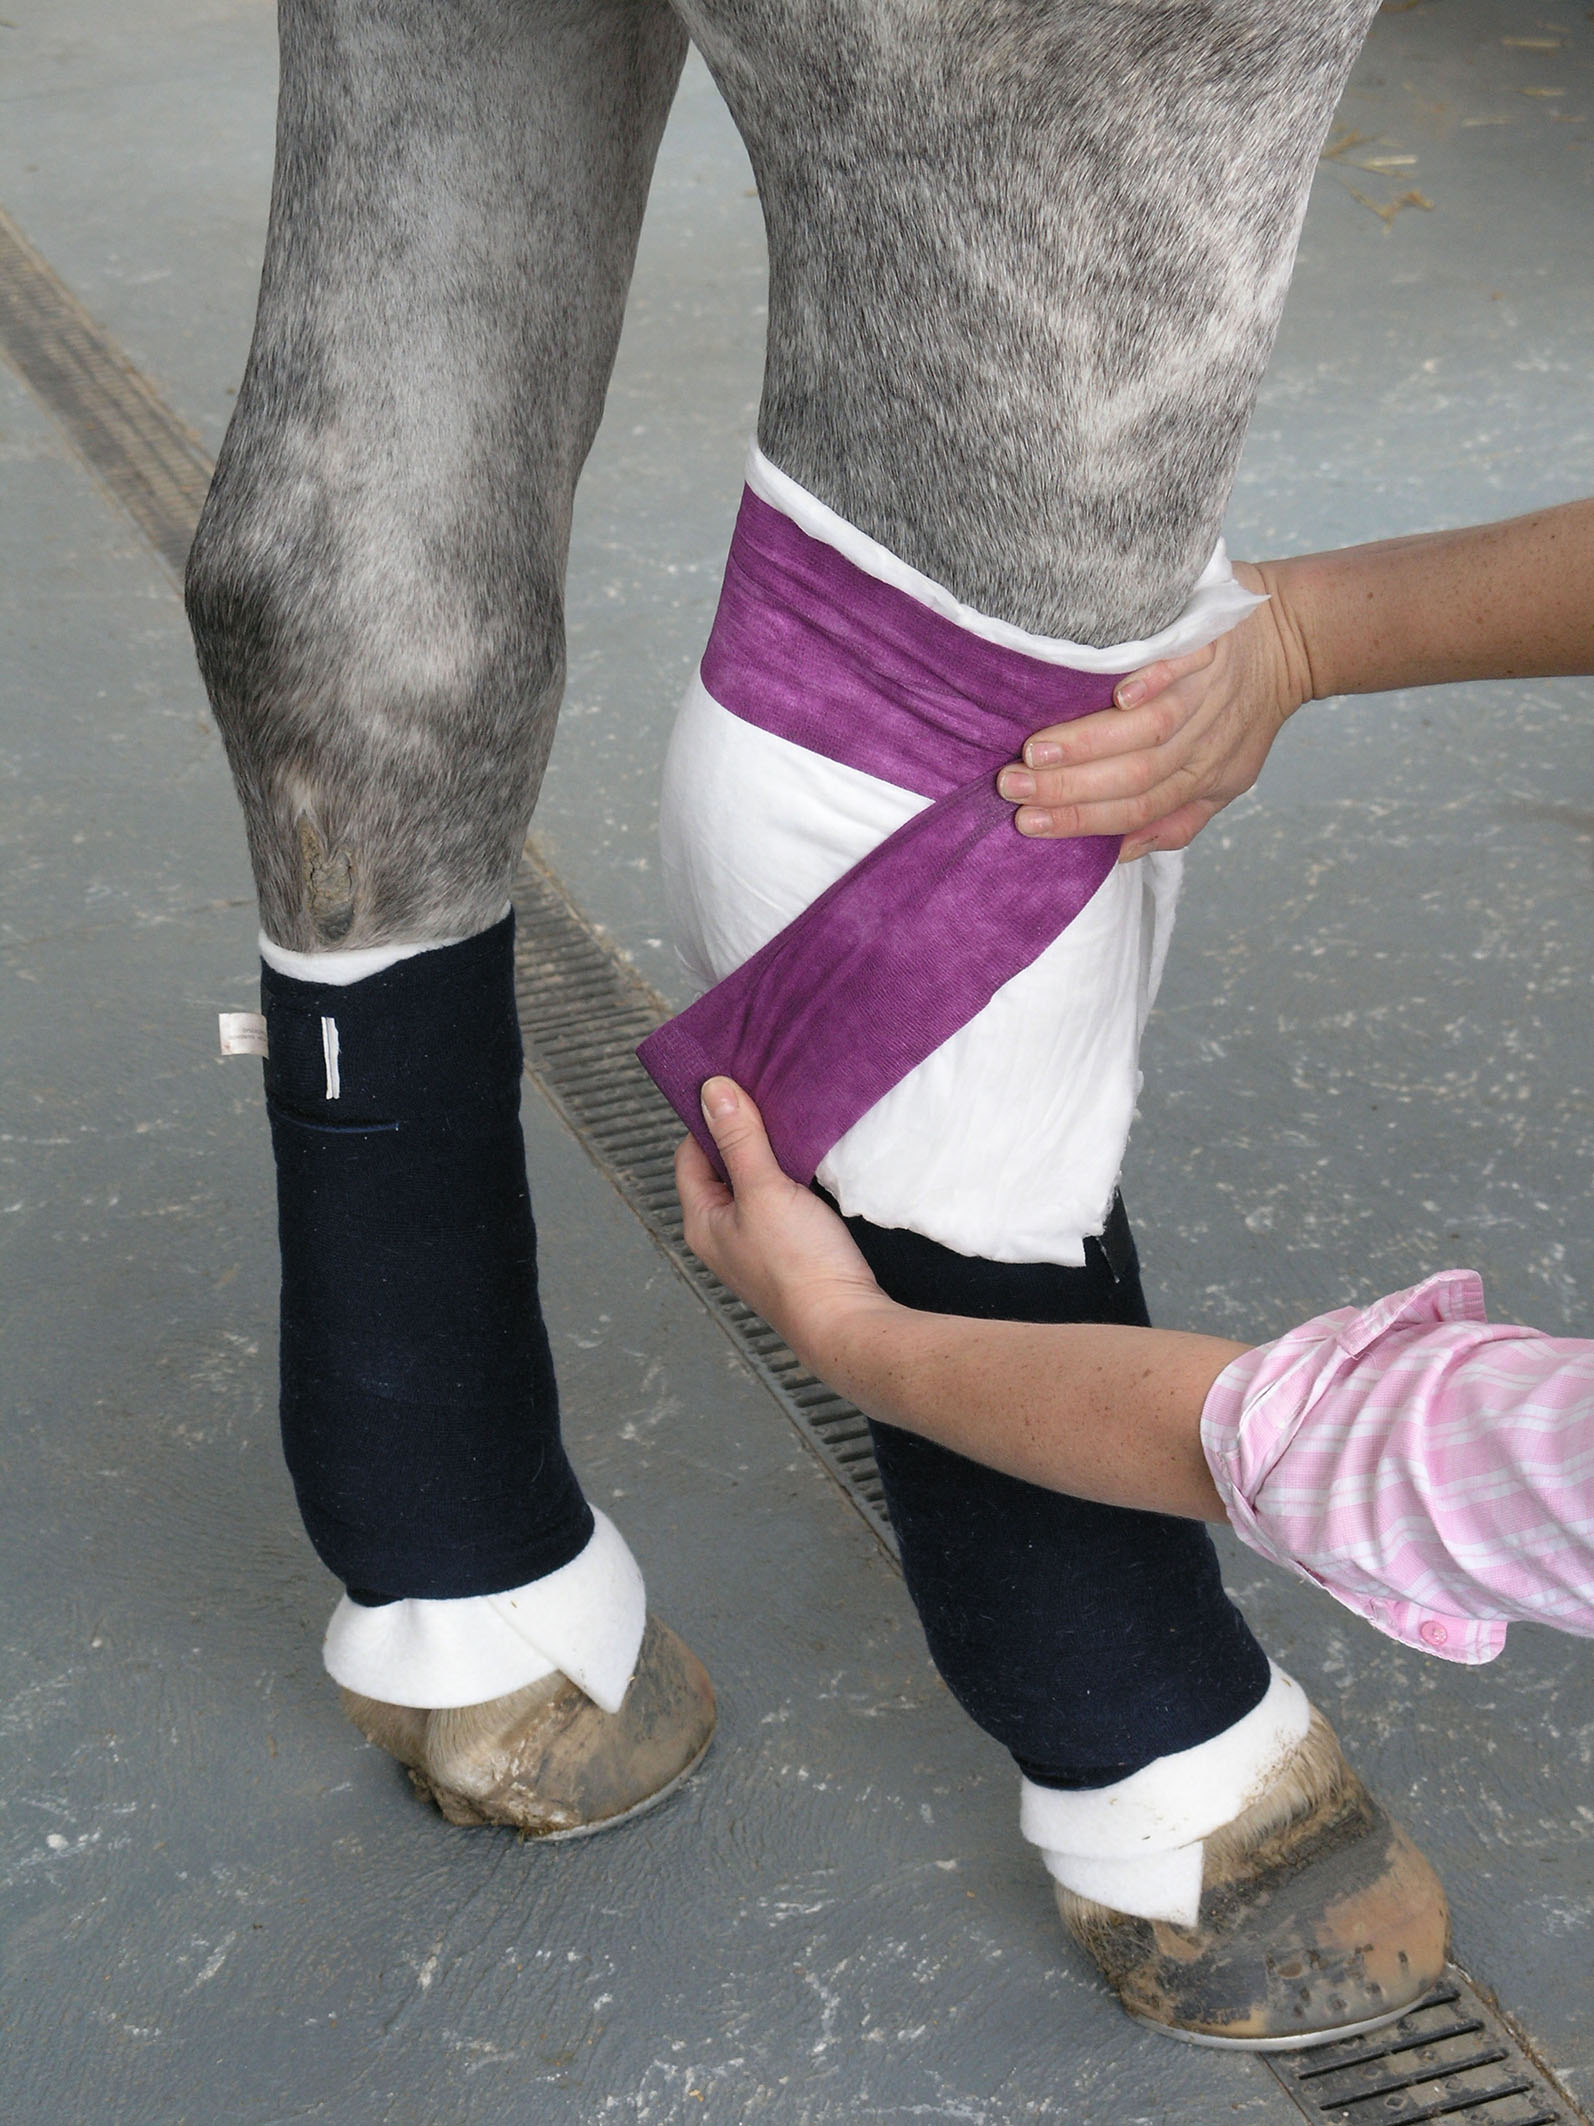 Always bandage both hind legs to provide support before bandaging either the knee or the hock